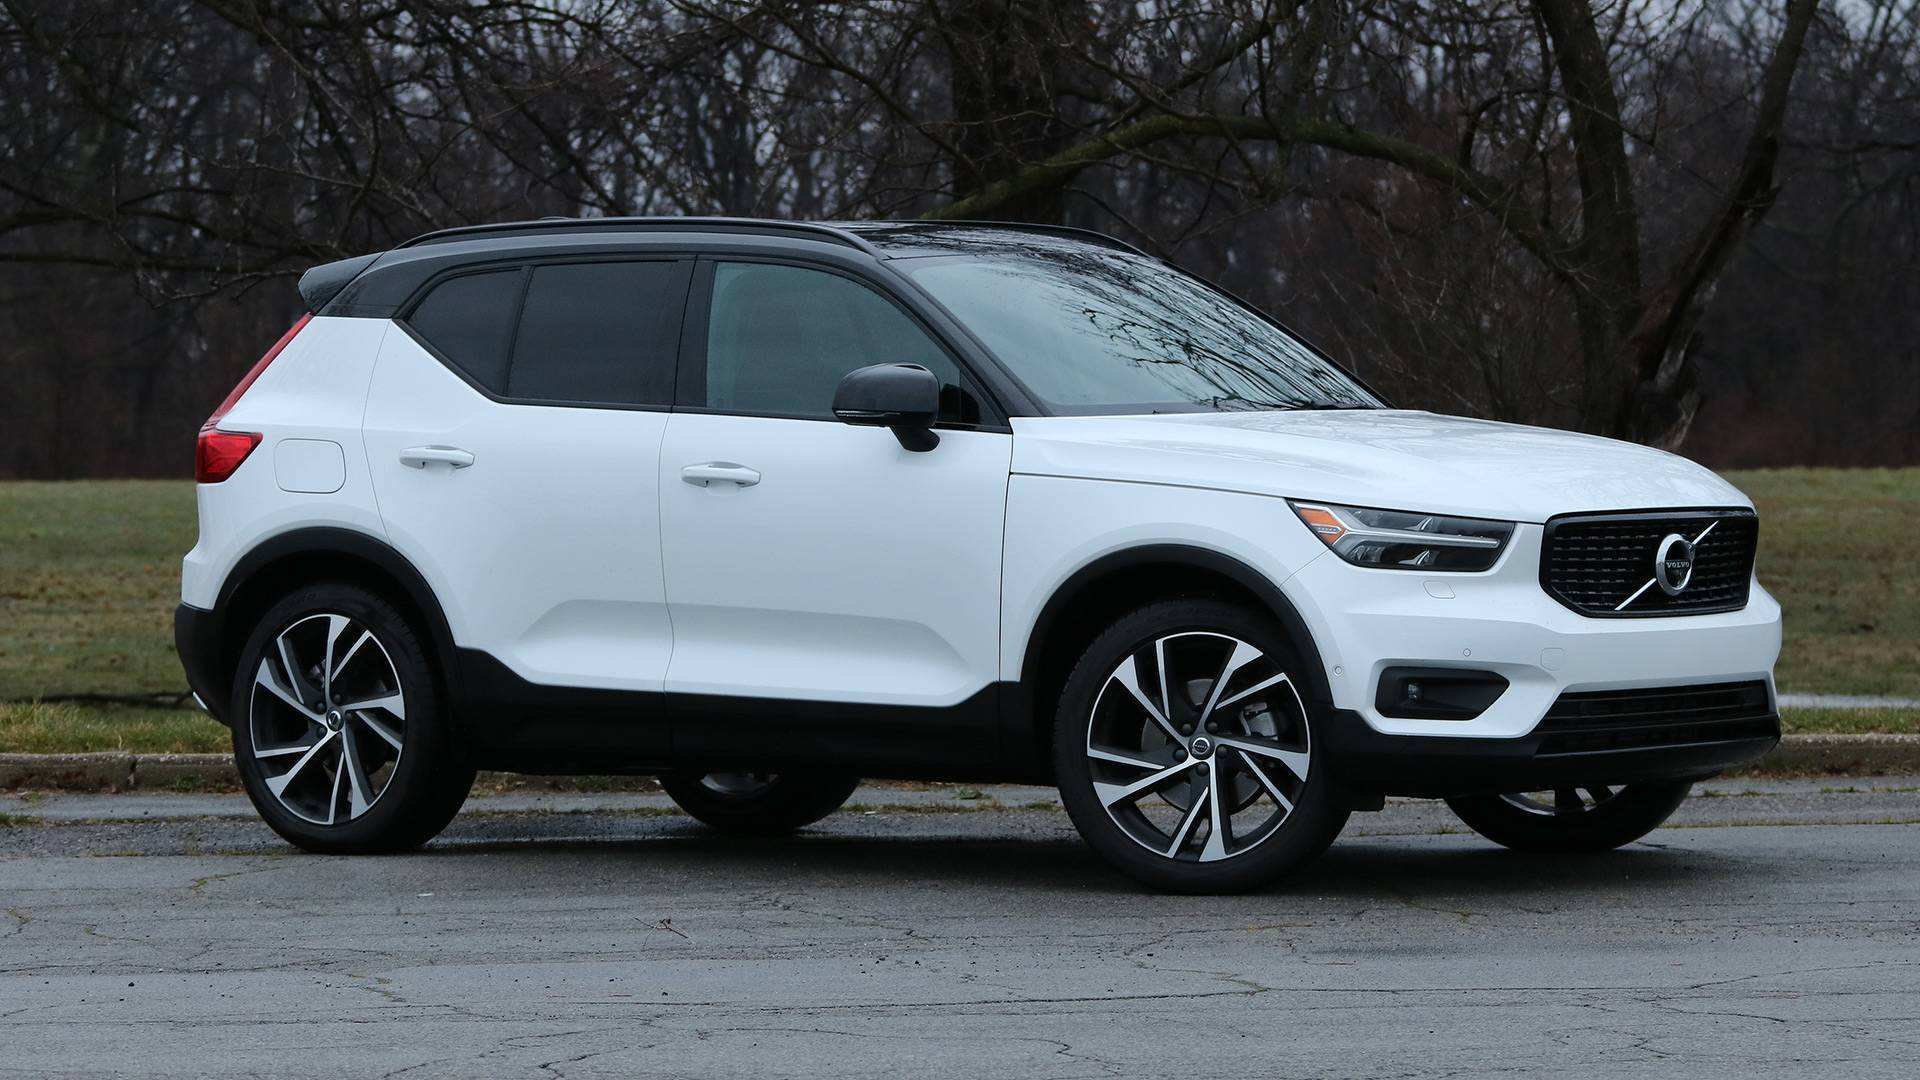 63 New 2019 Volvo Xc40 Gas Mileage Pictures with 2019 Volvo Xc40 Gas Mileage